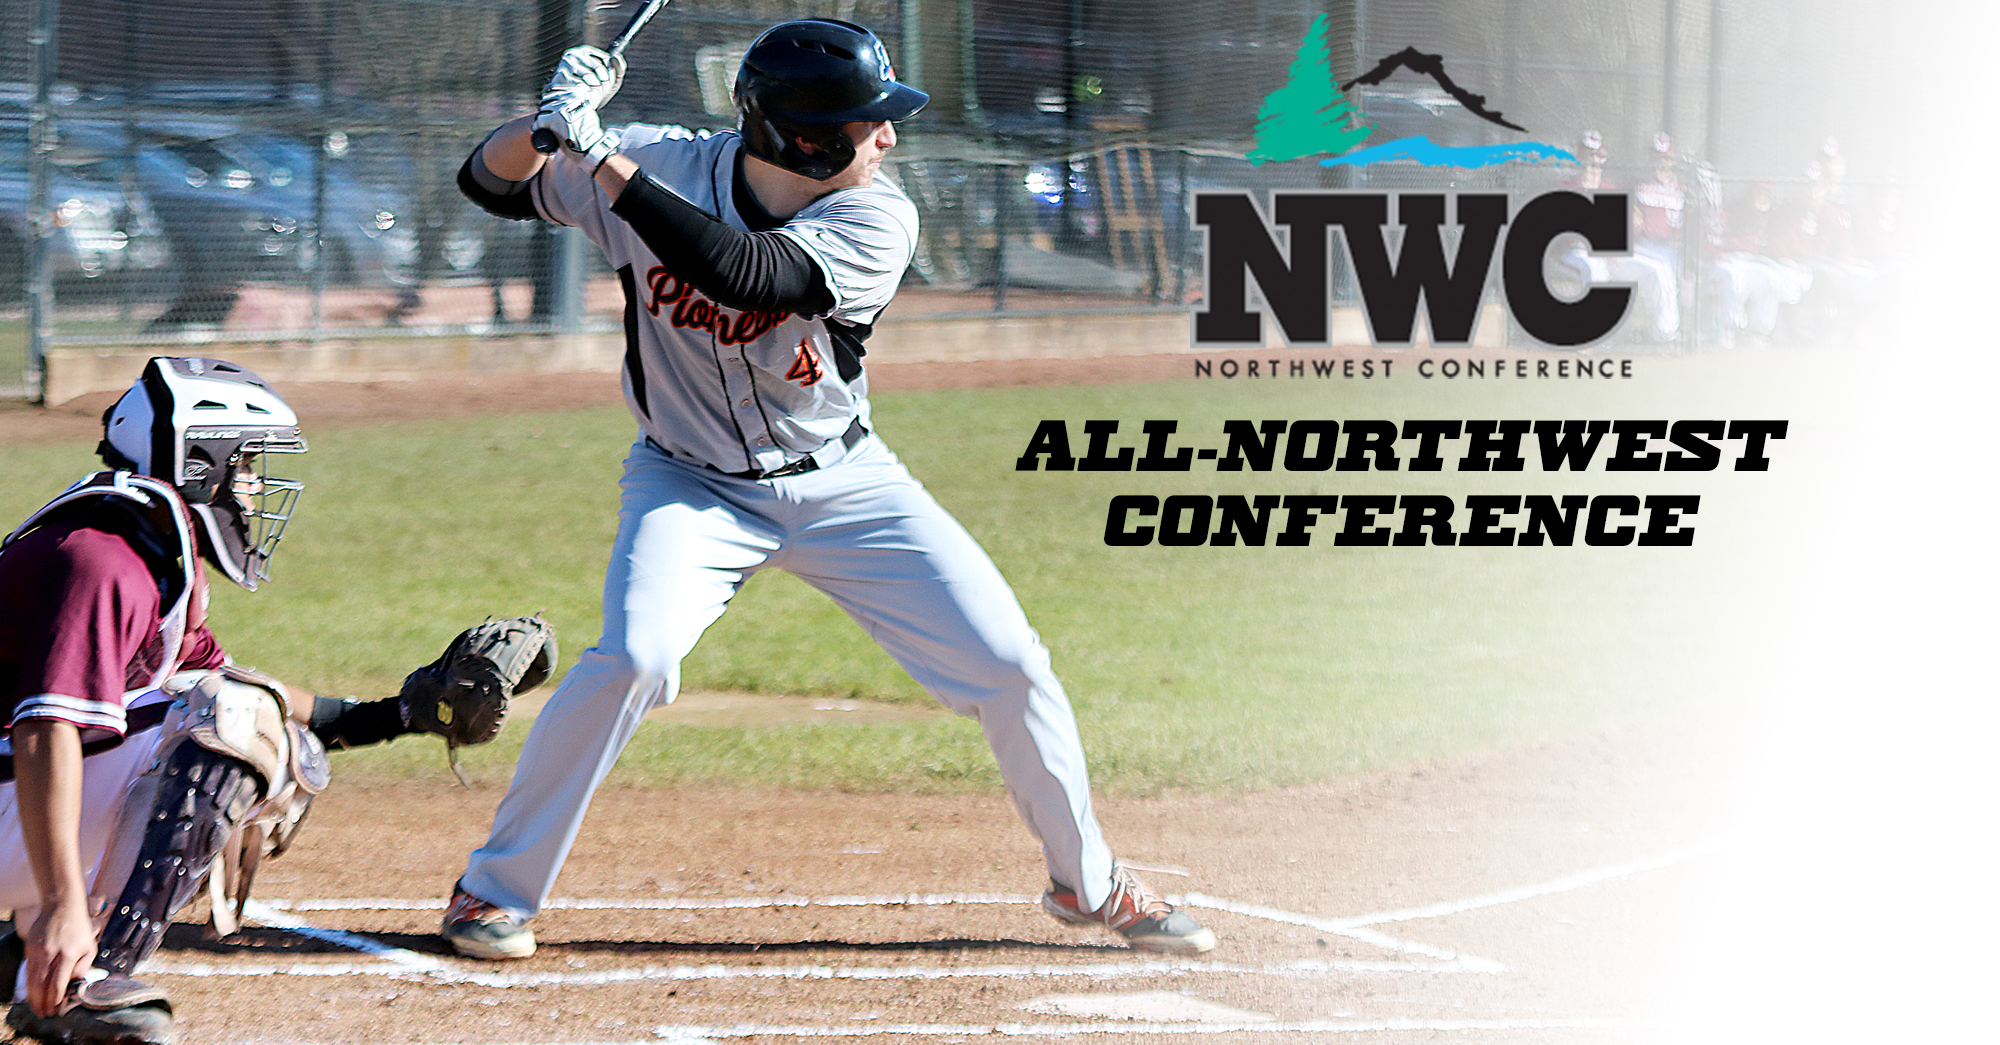 Shepherd, Donovan nab All-NWC selections